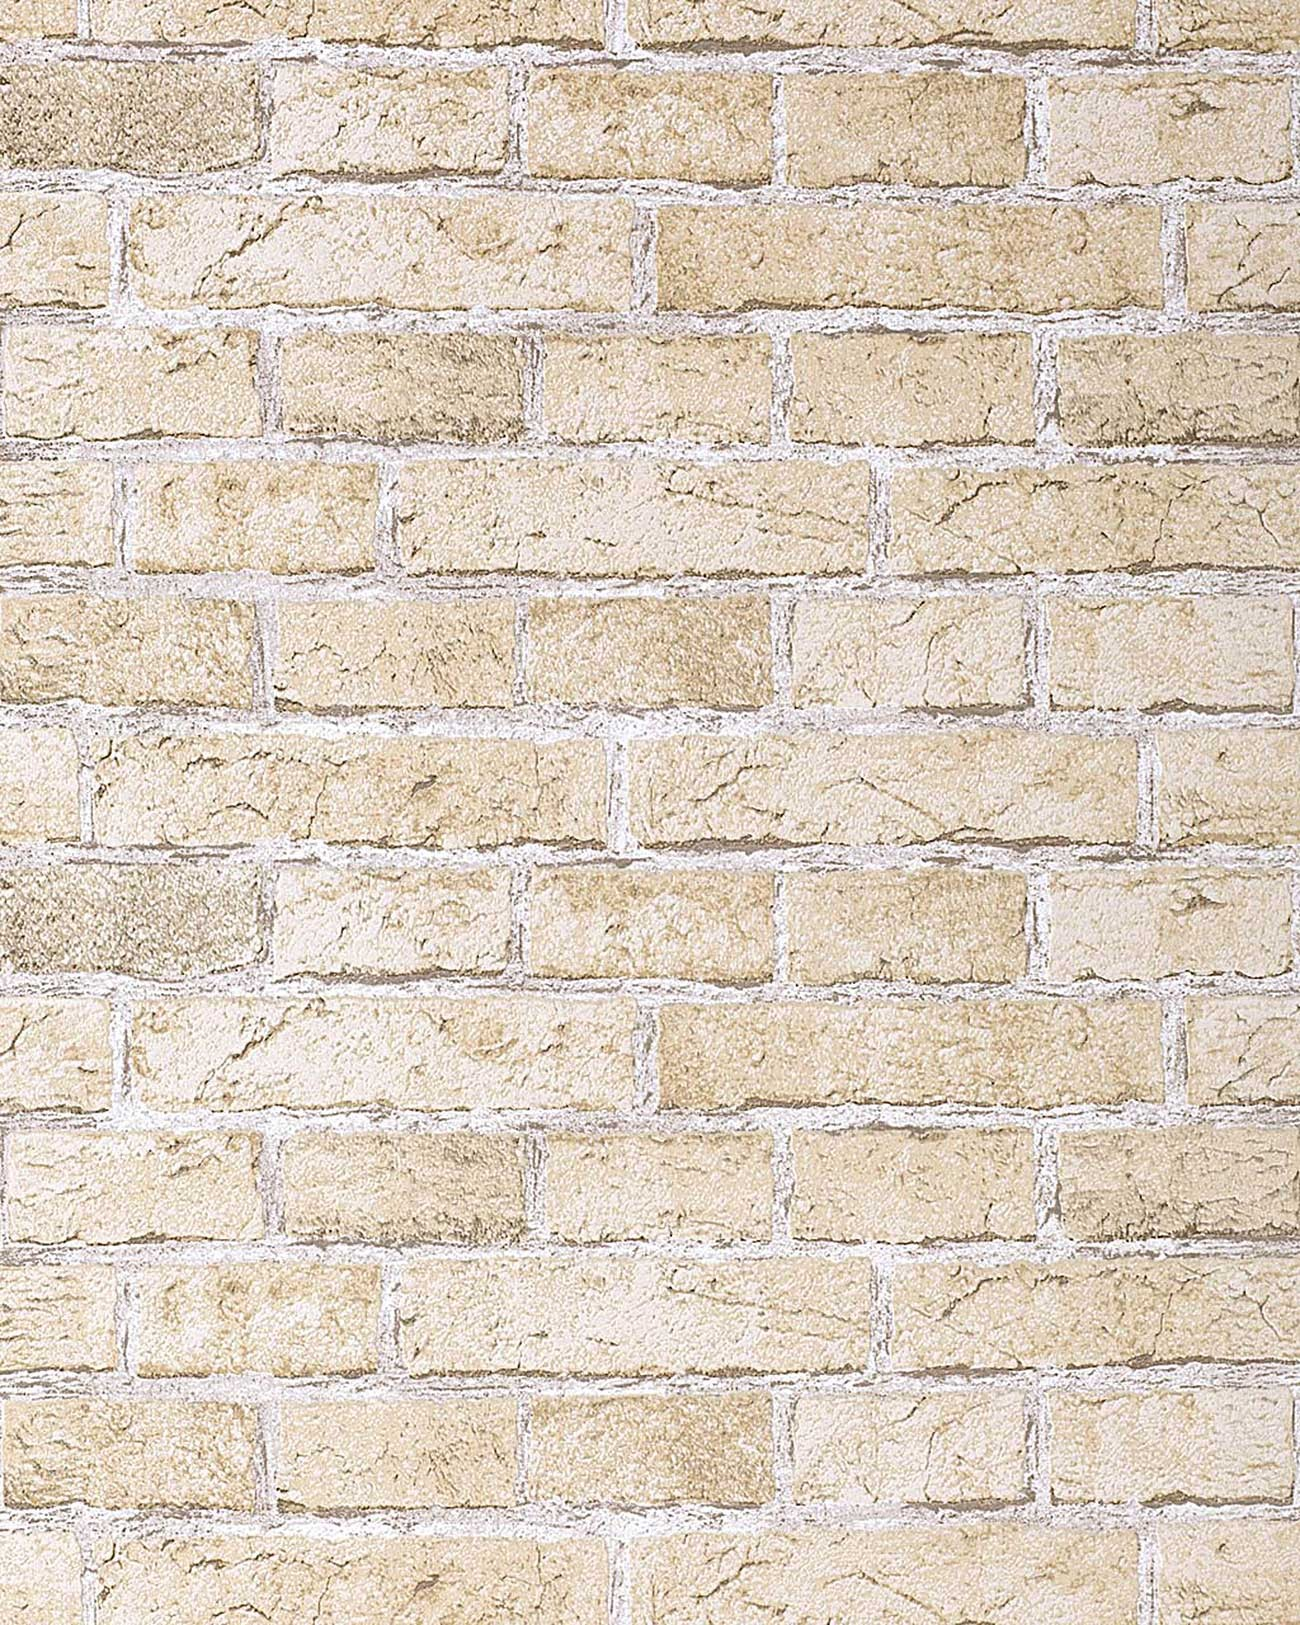 Vintage Stone Walls : Edem rustic design brick wallpaper decor vintage